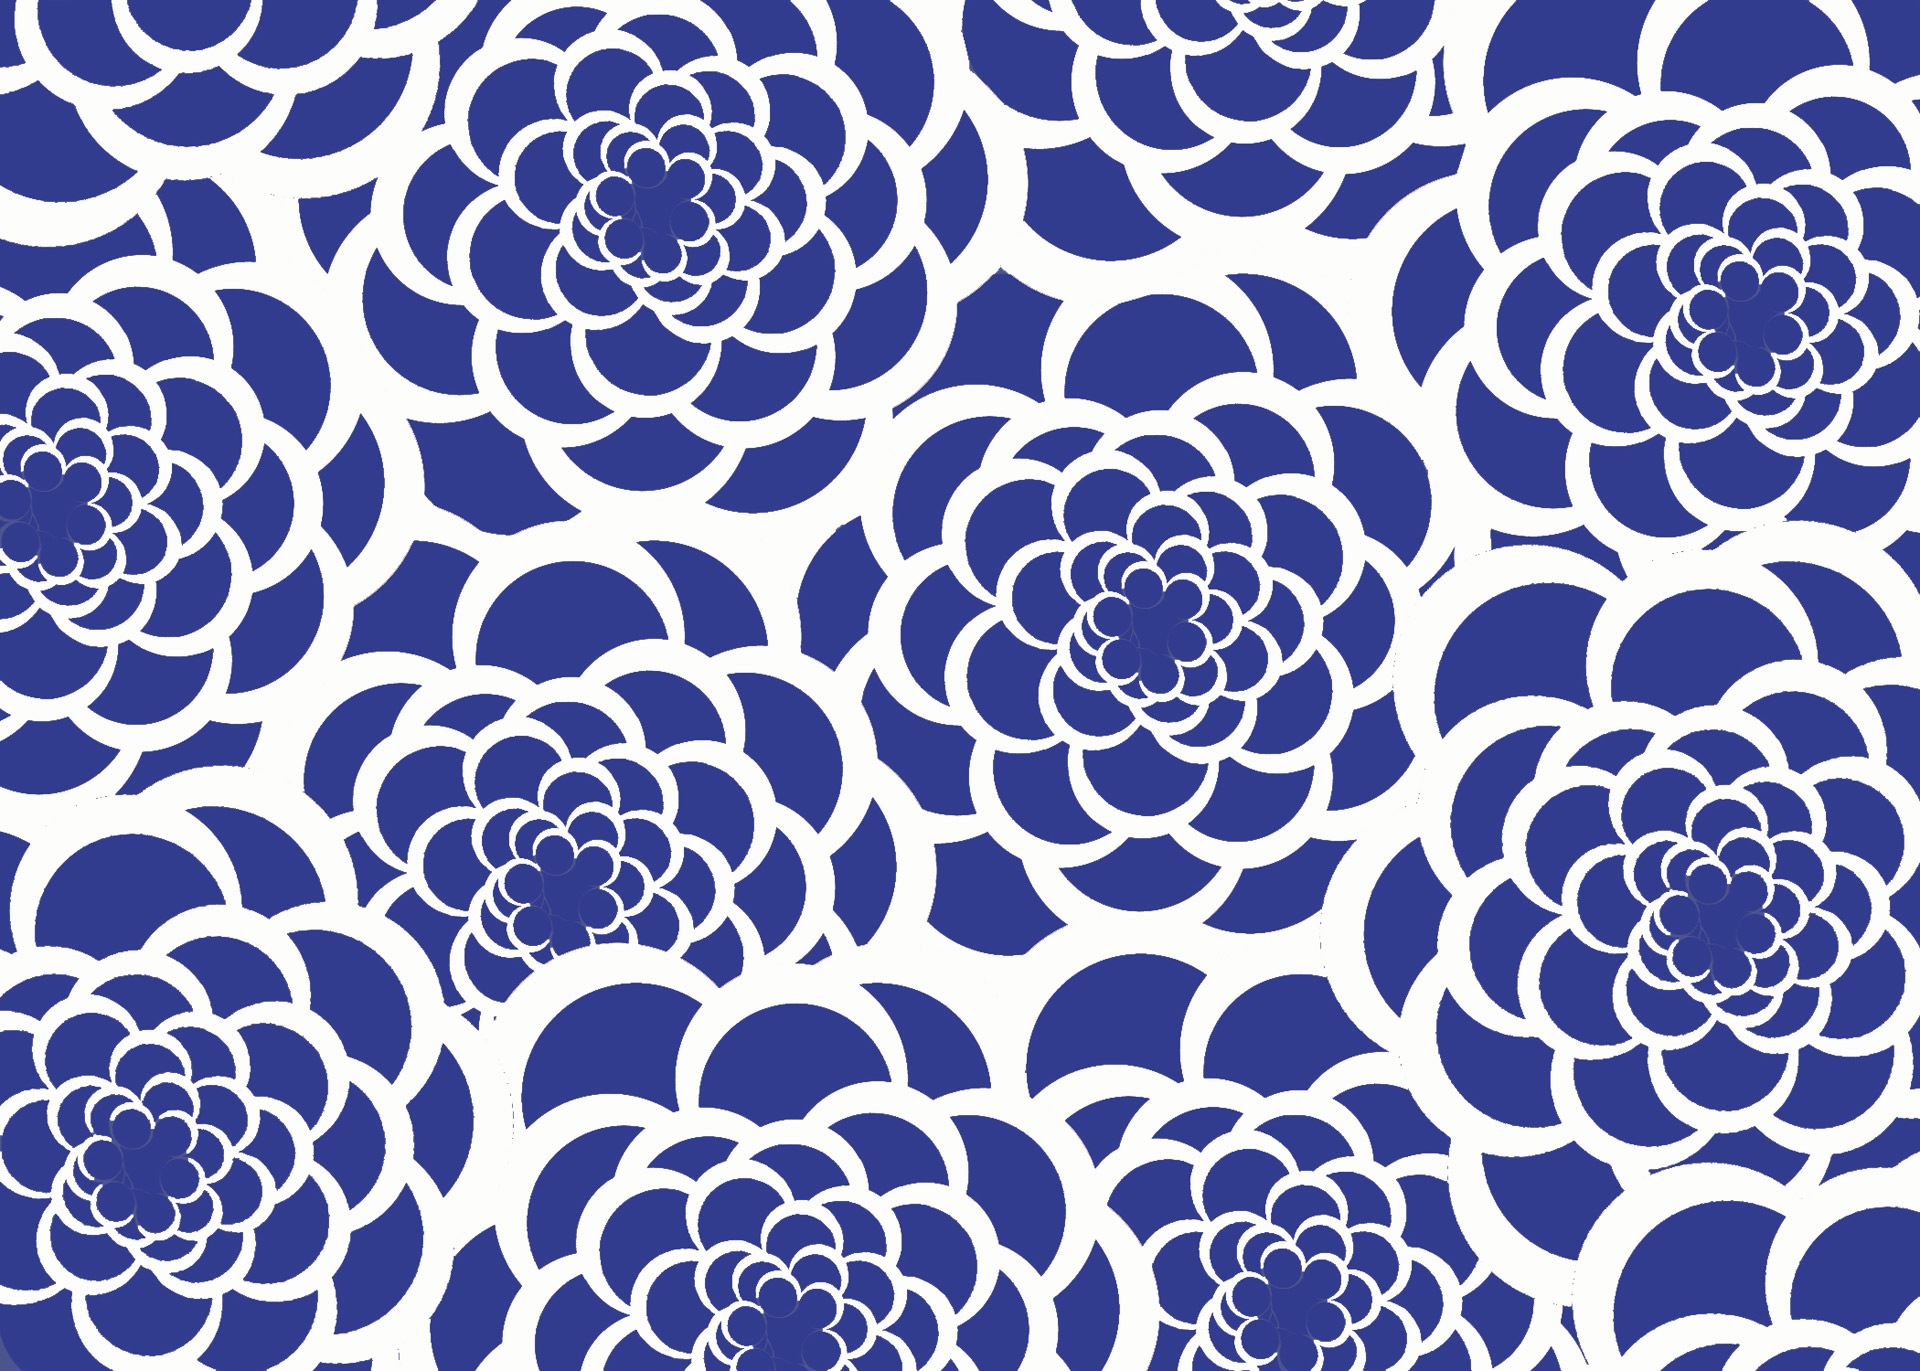 Navy Dark Blue White Flower Free Image From Needpix Com